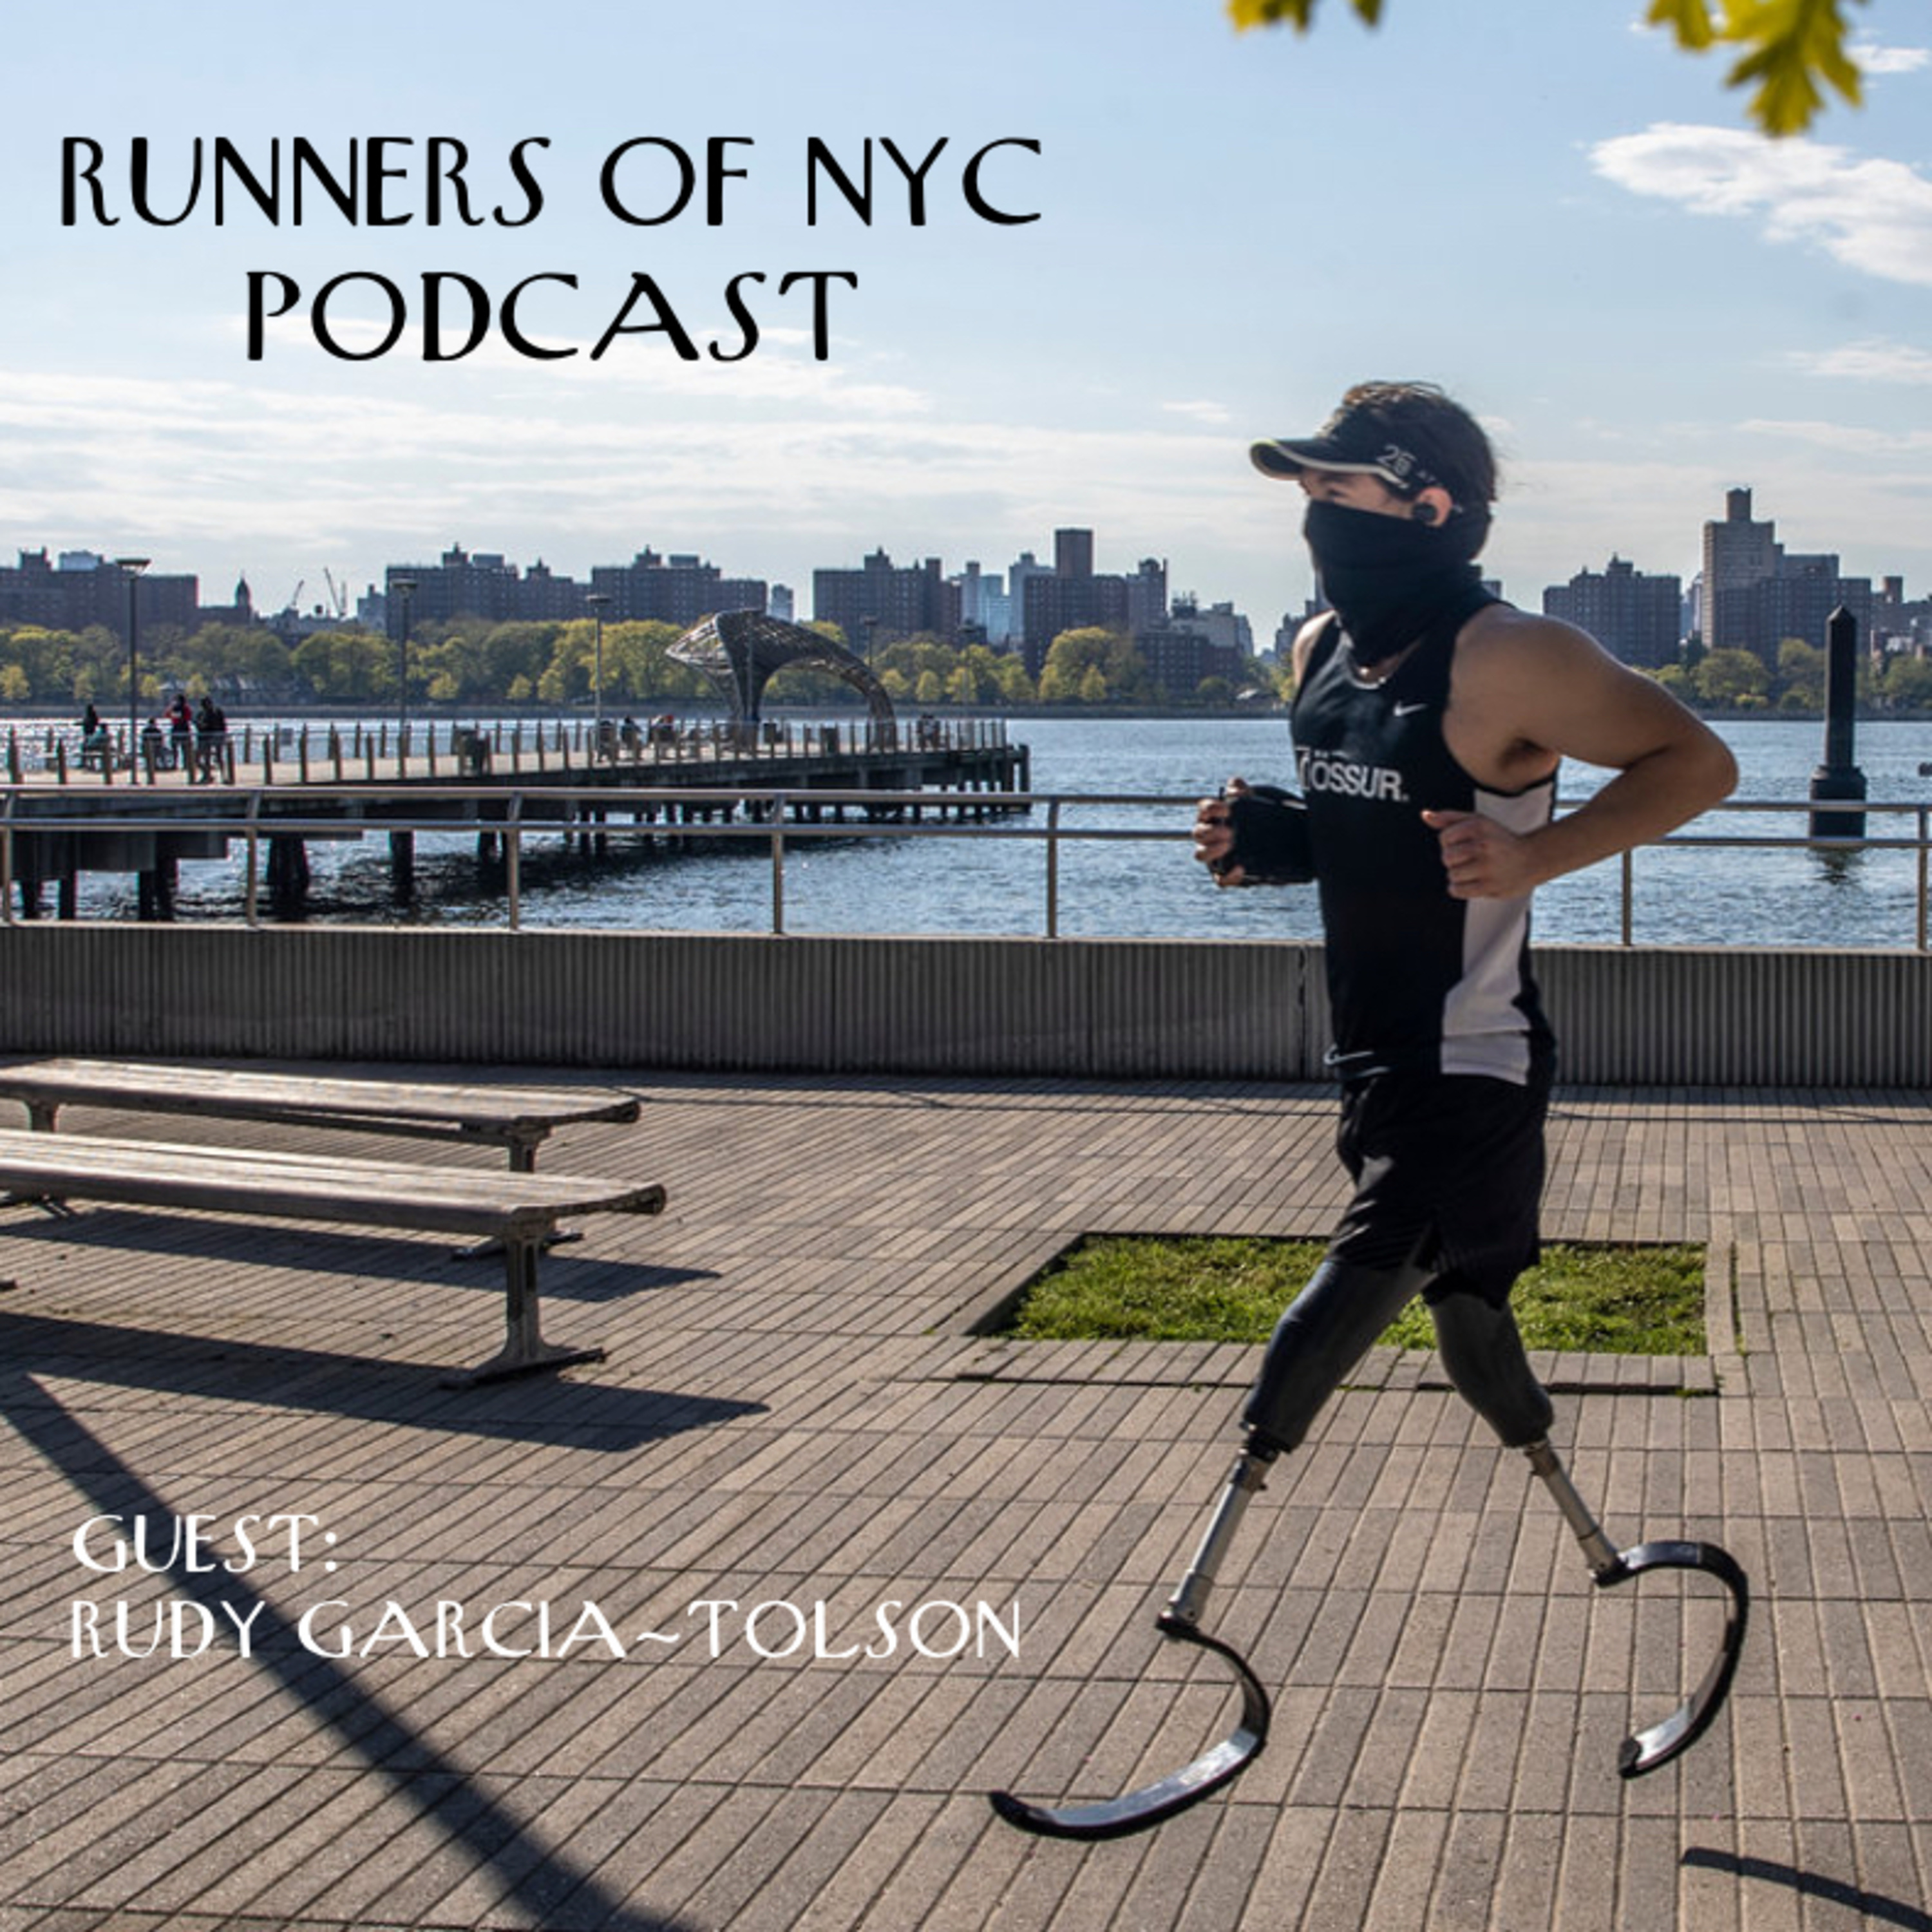 Episode 45 – Rudy Garcia-Tolson, Four-Time U.S. Paralympic Swimmer and Runner